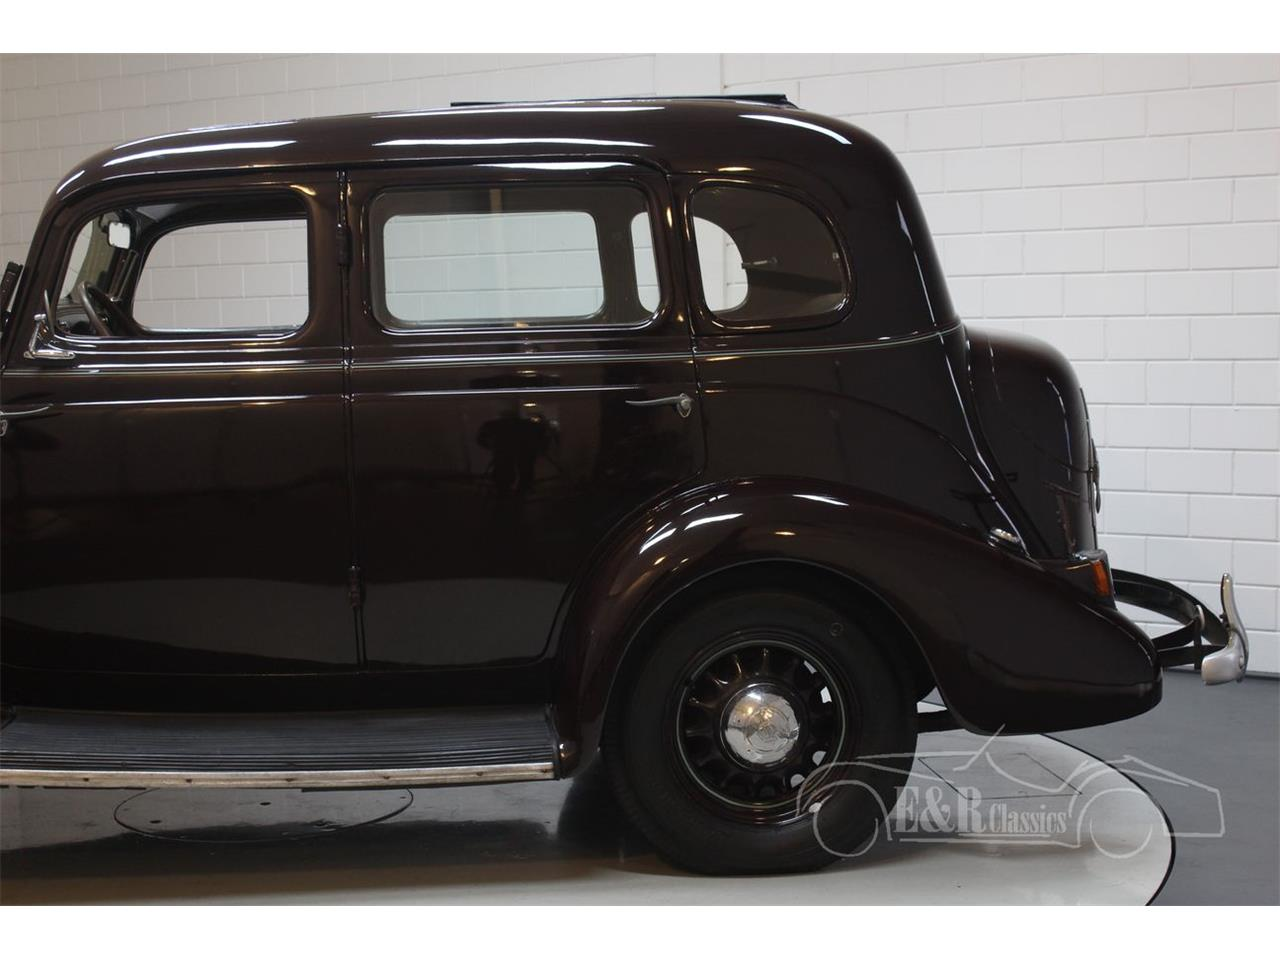 Large Picture of '35 Studebaker Dictator located in Waalwijk noord brabant - $33,800.00 Offered by E & R Classics - QJ2R